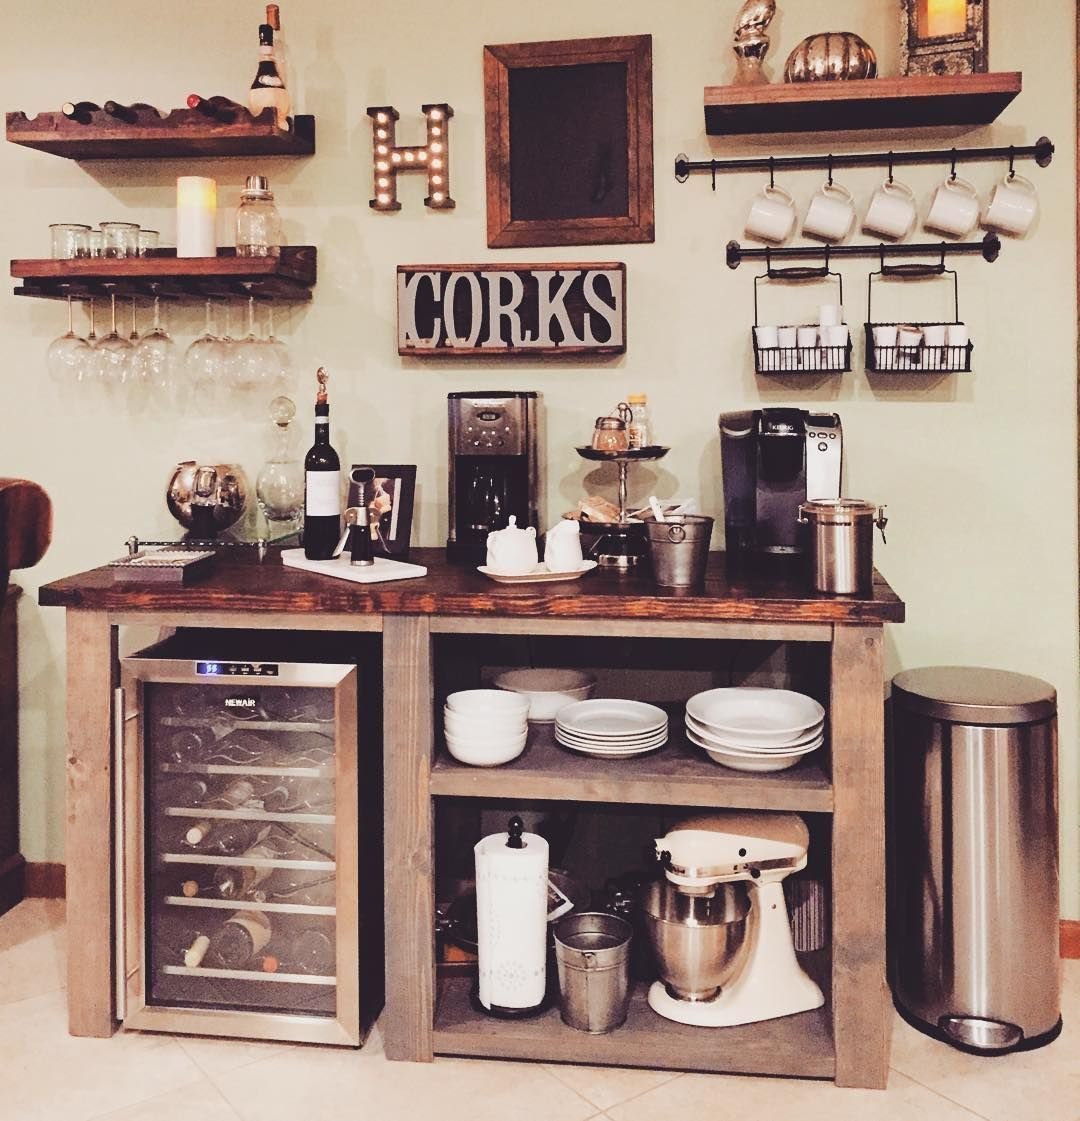 Home Coffee Bar Design Ideas: Custom Built Rustic Furniture And Home Decor